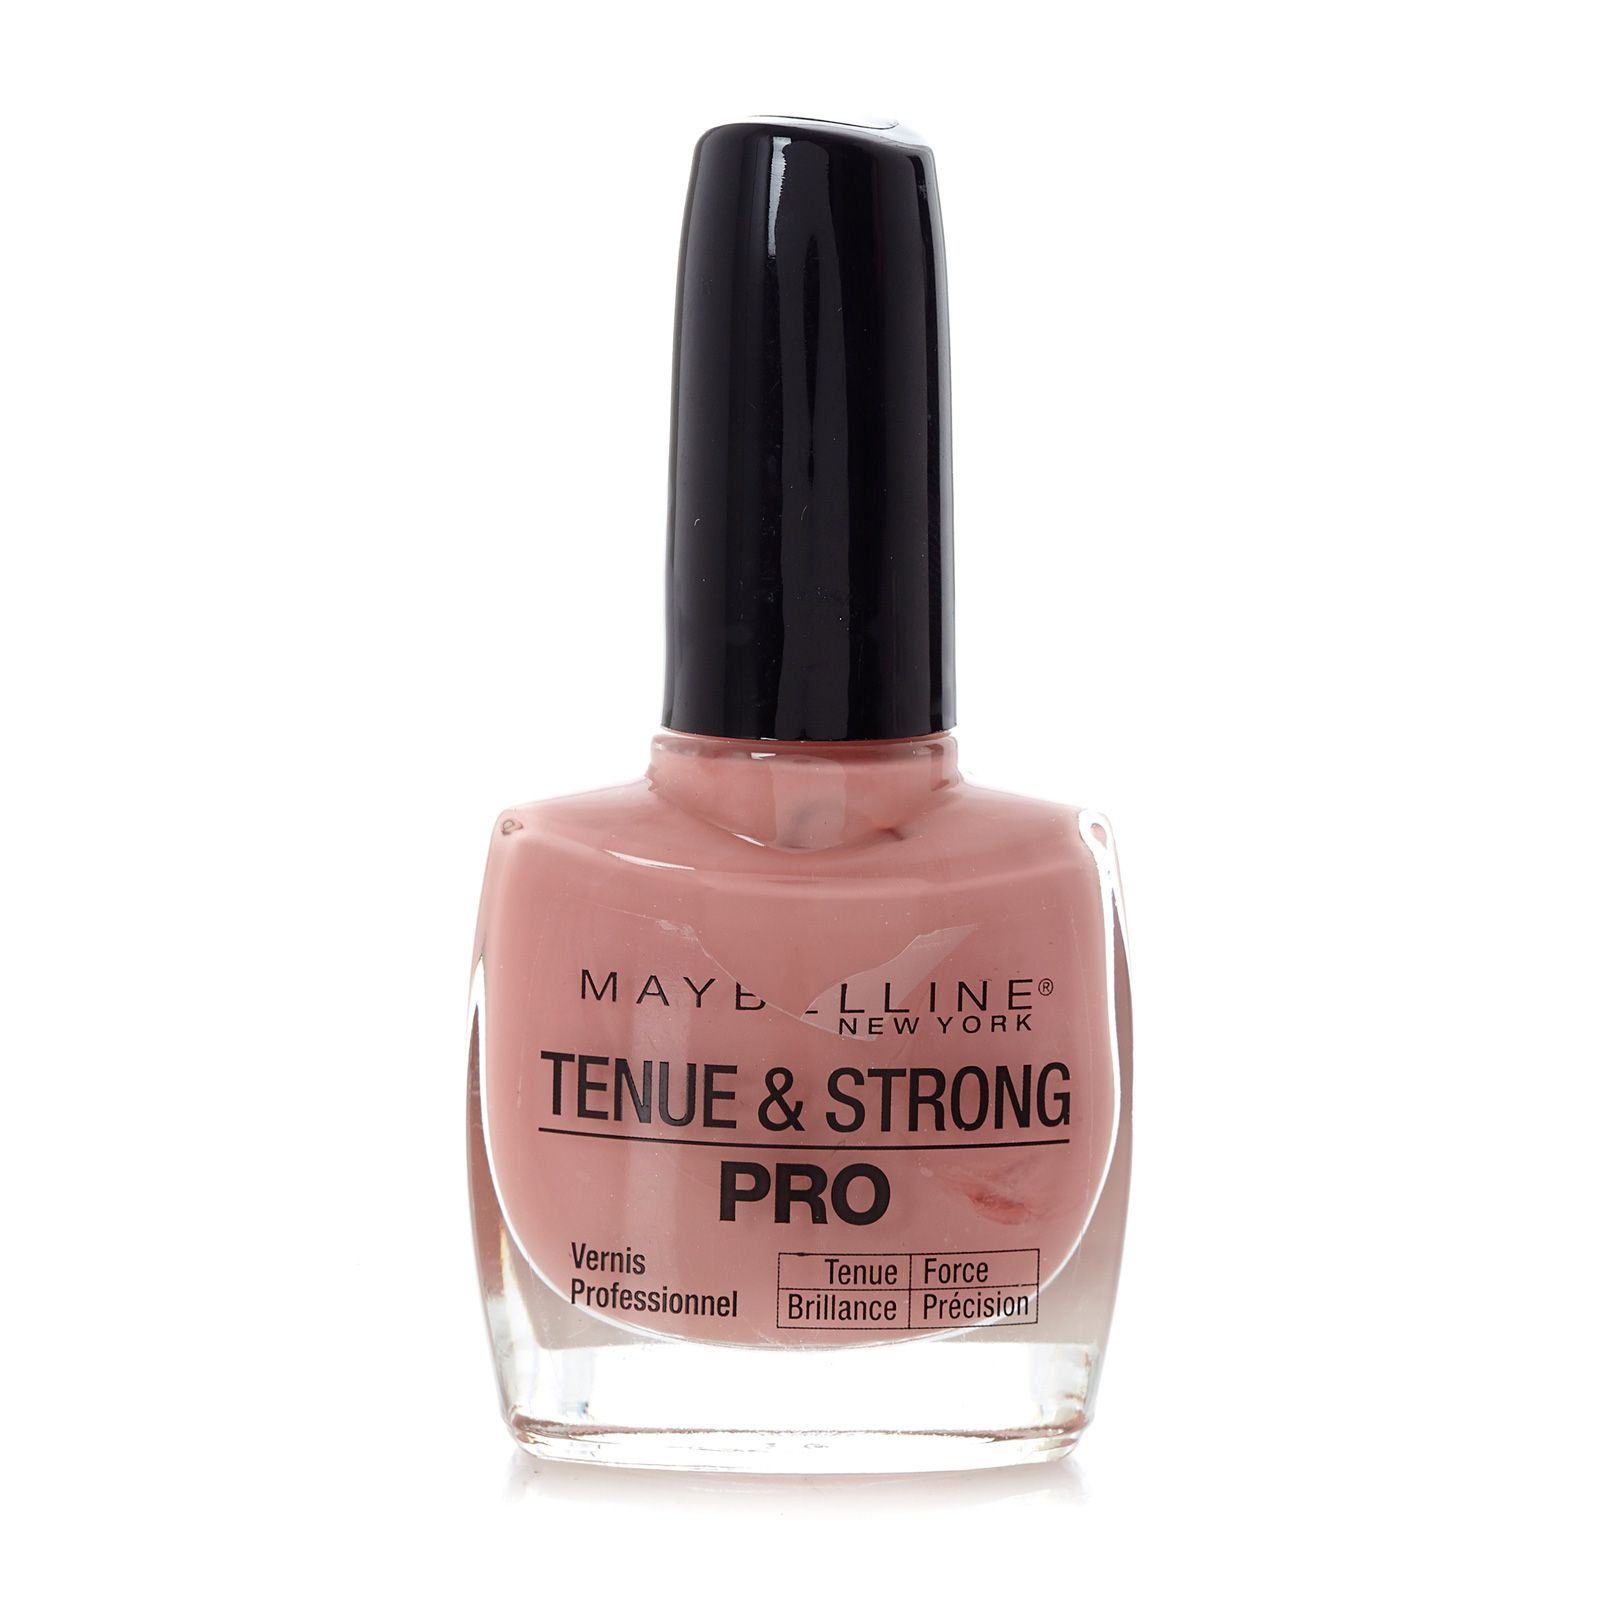 maybelline tenue strong pro nagellack 135 nude rose. Black Bedroom Furniture Sets. Home Design Ideas